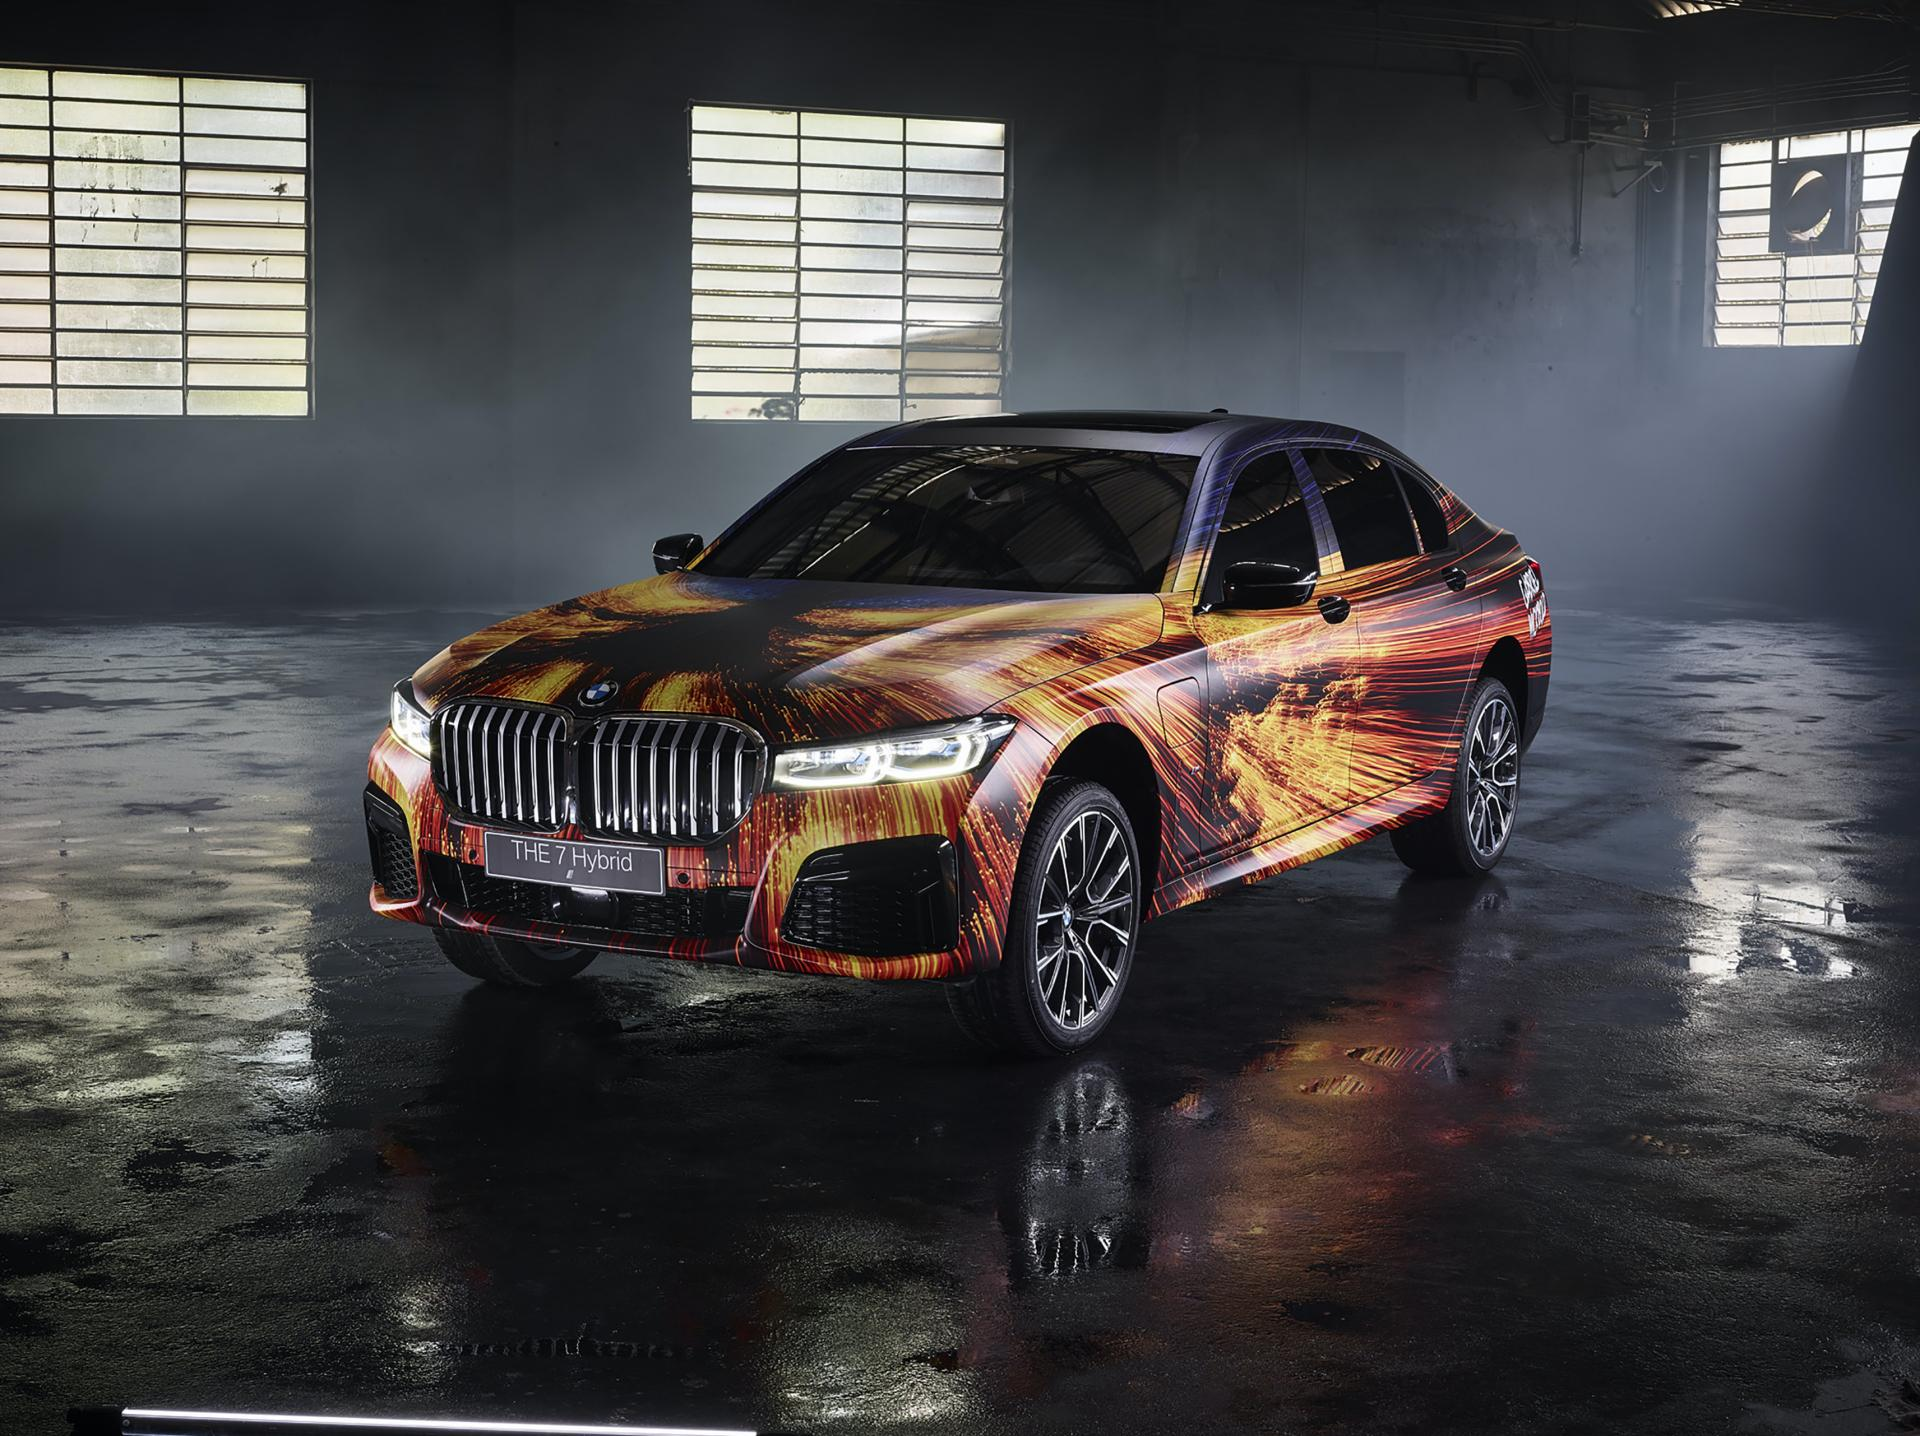 BMW-7-Series-745Le-M-Sport-Gabriel-Wickbold-Car-Art-1